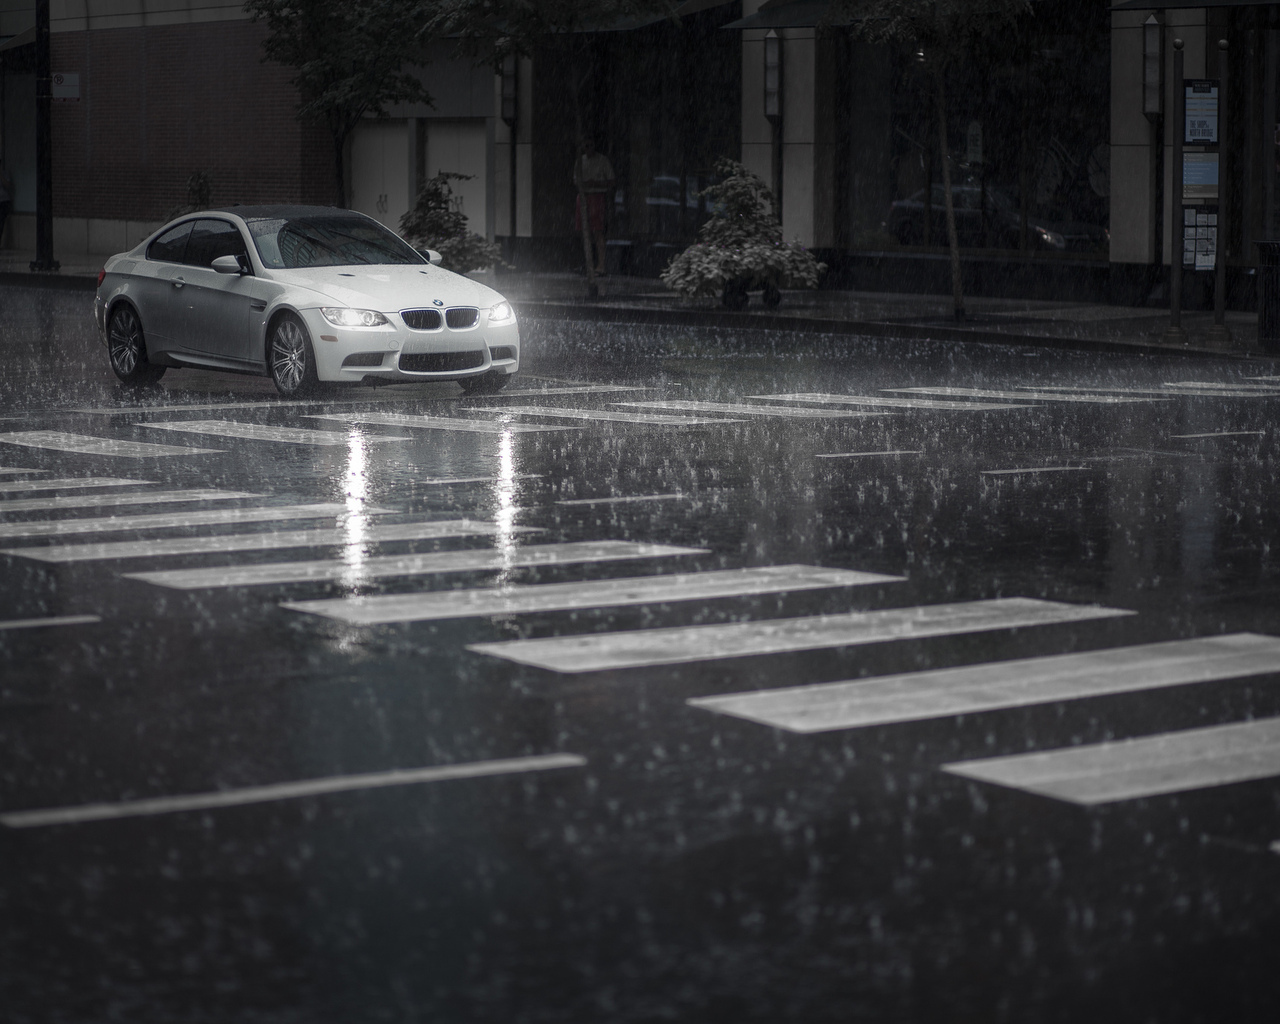 14850 download wallpaper Transport, Auto, Bmw, Rain, Art Photo screensavers and pictures for free